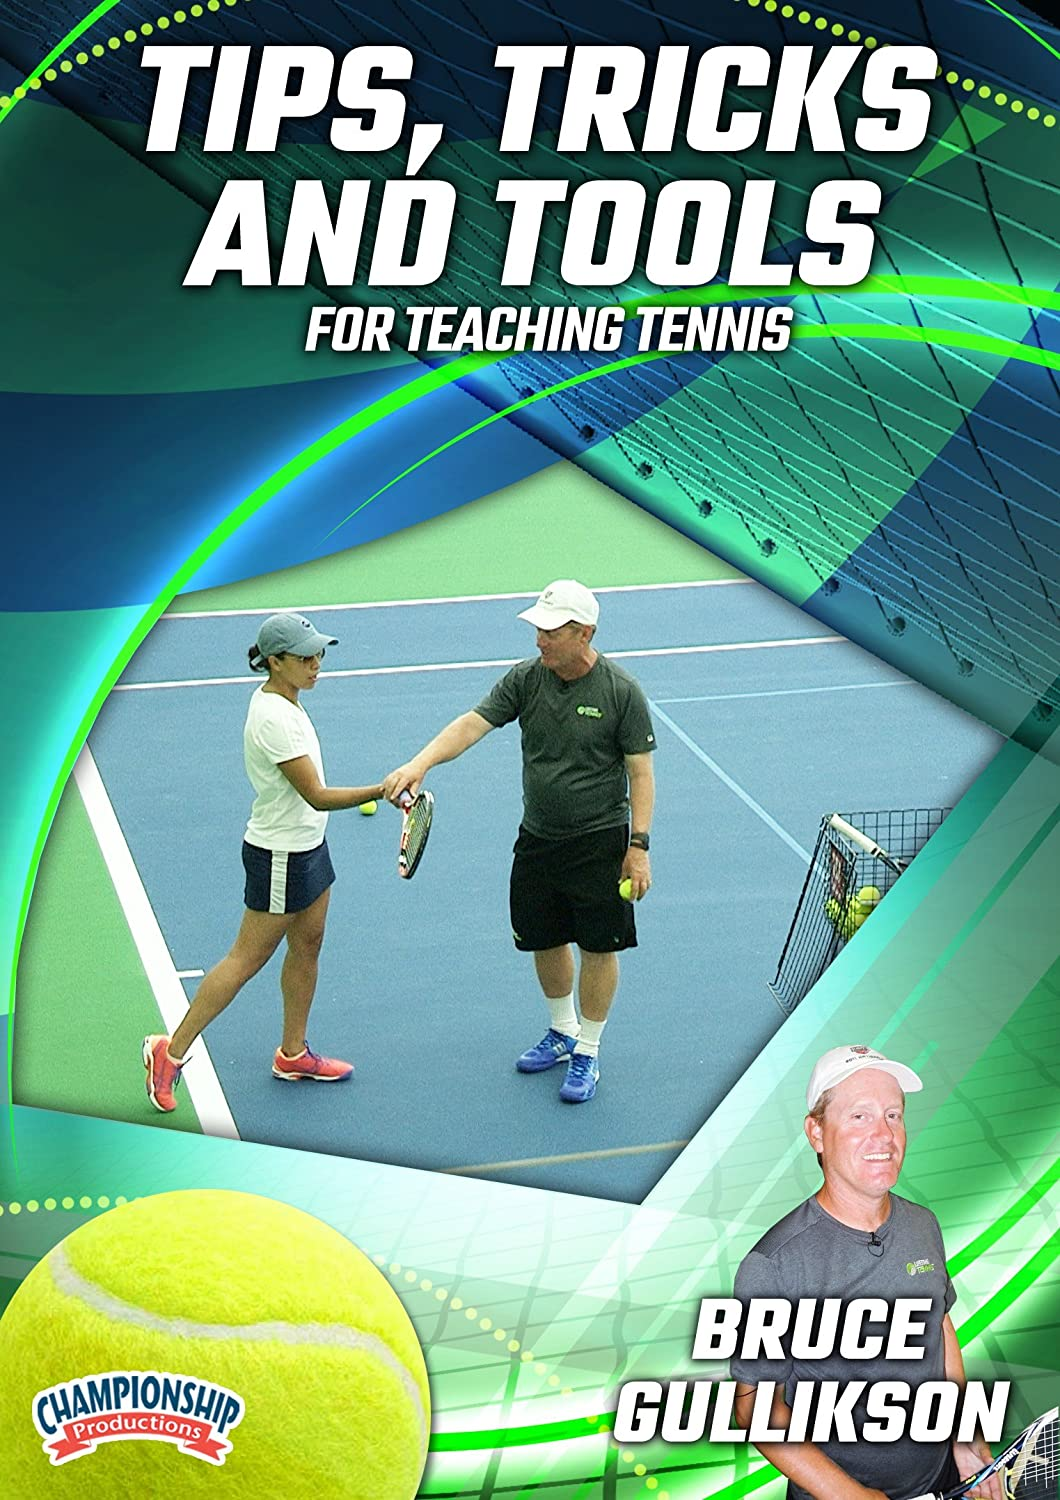 Amazon.com: Tips, Tricks and Tools for Teaching Tennis: Bruce Gullikson: Movies & TV